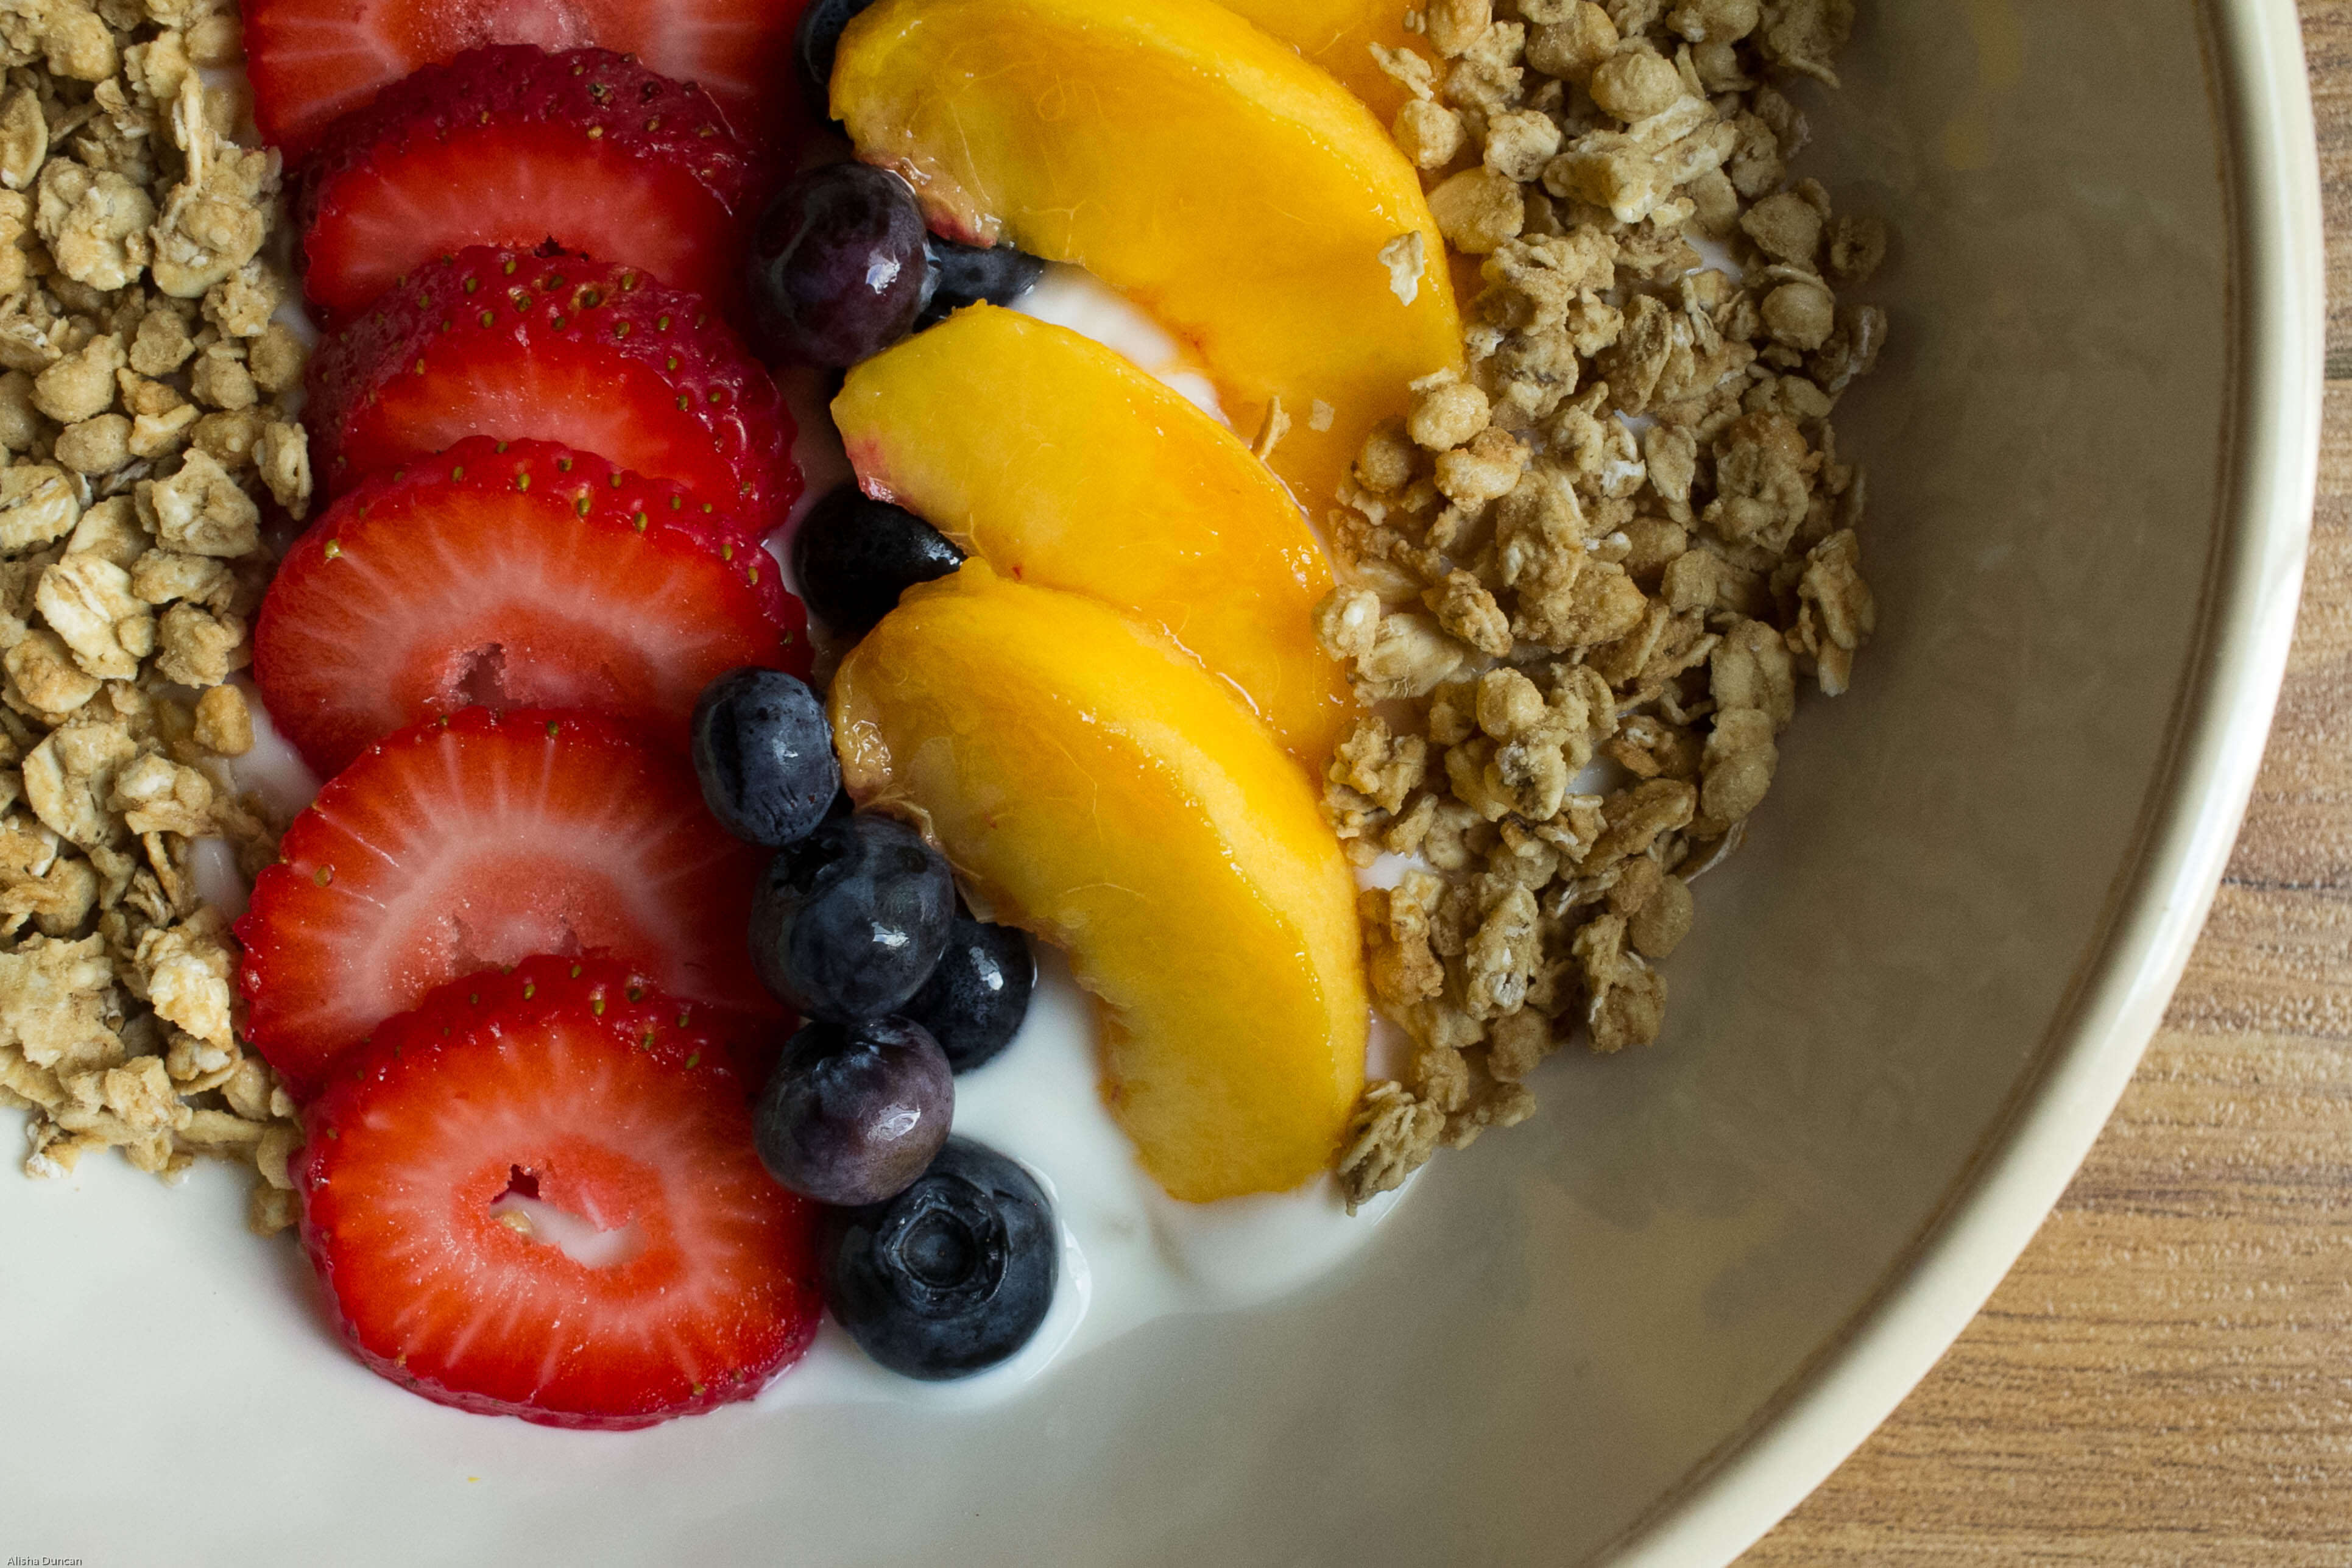 TOTS Family, Parenting, Kids, Food, Crafts, DIY and Travel IMG_7529 Morning Yogurt Breakfast Bowl Breakfast Food TOTS Family  recipe breakfast